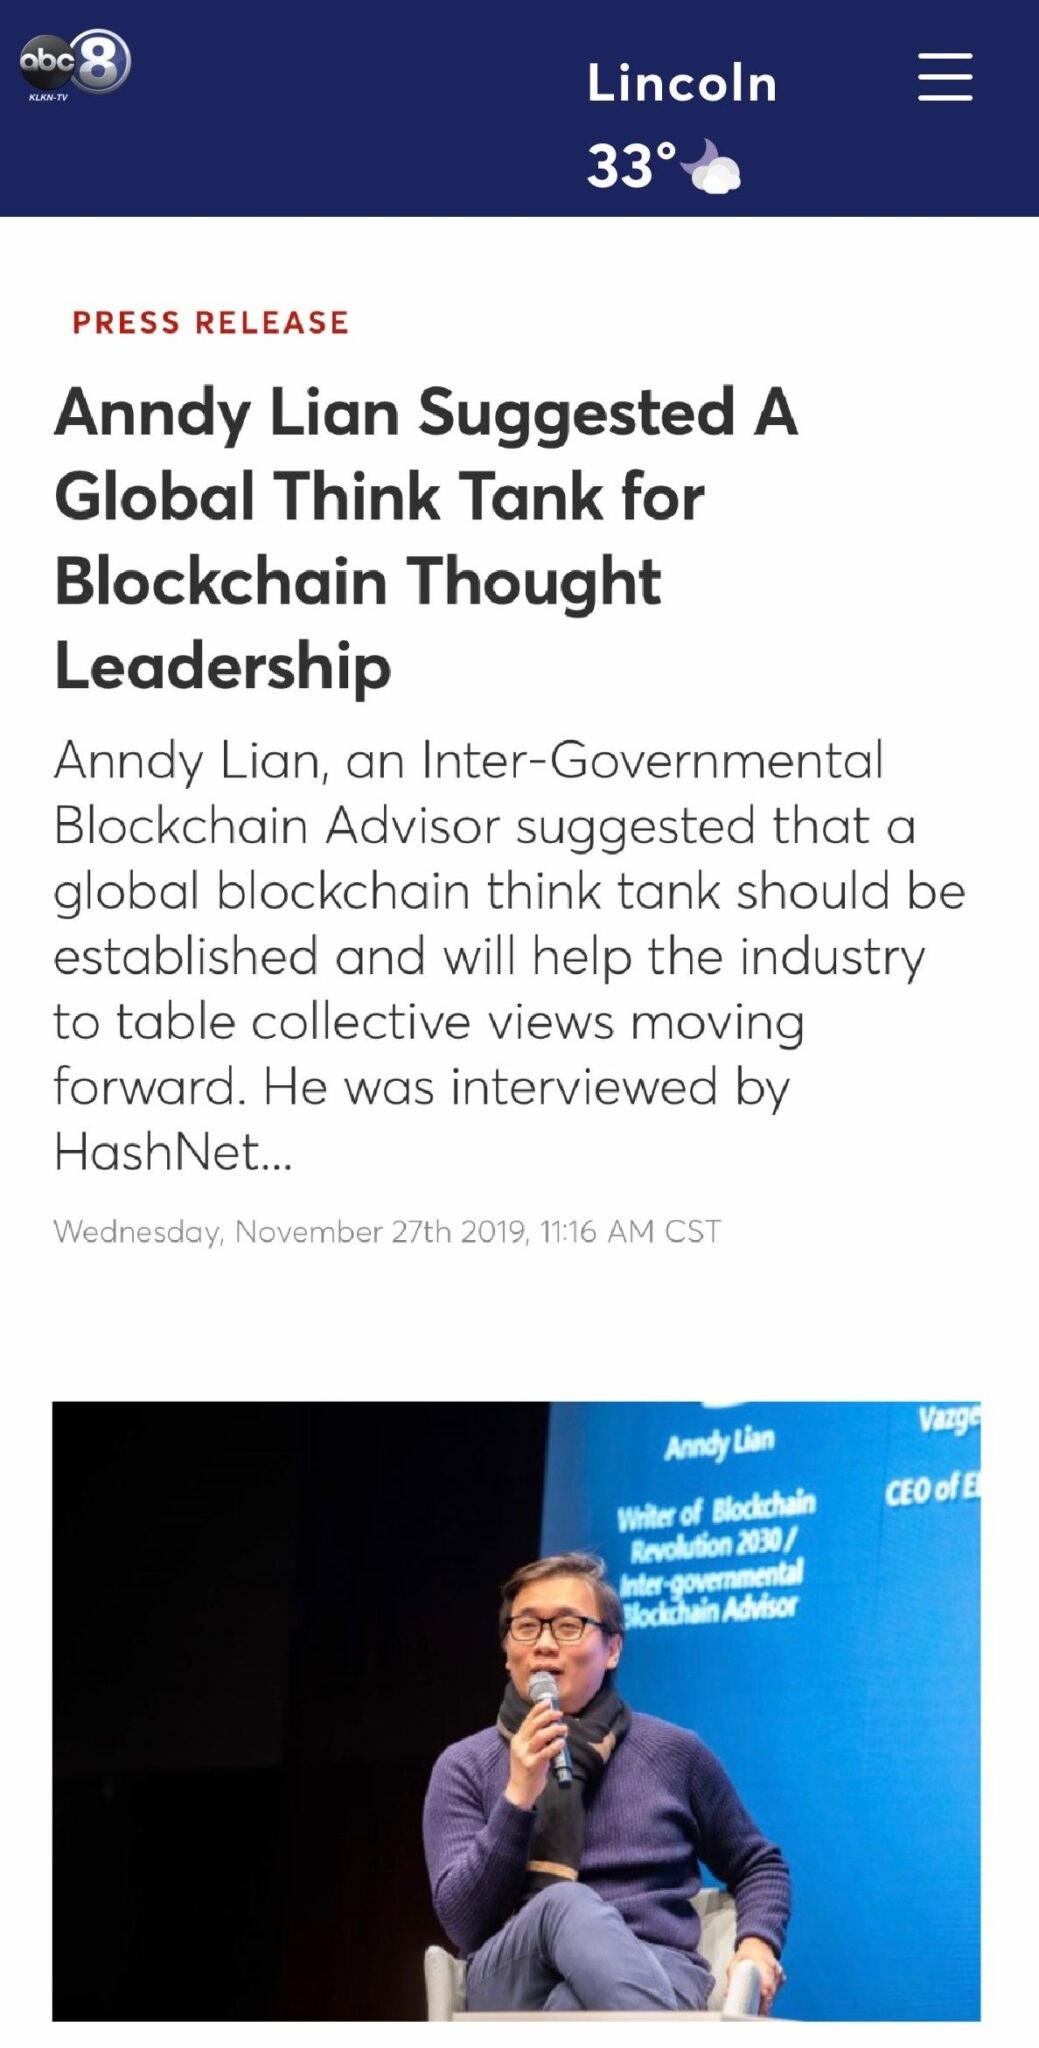 , ABC 6: Anndy Lian Suggested A Global Think Tank for Blockchain Thought Leadership, Blockchain Adviser for Inter-Governmental Organisation | Book Author | Investor | Board Member